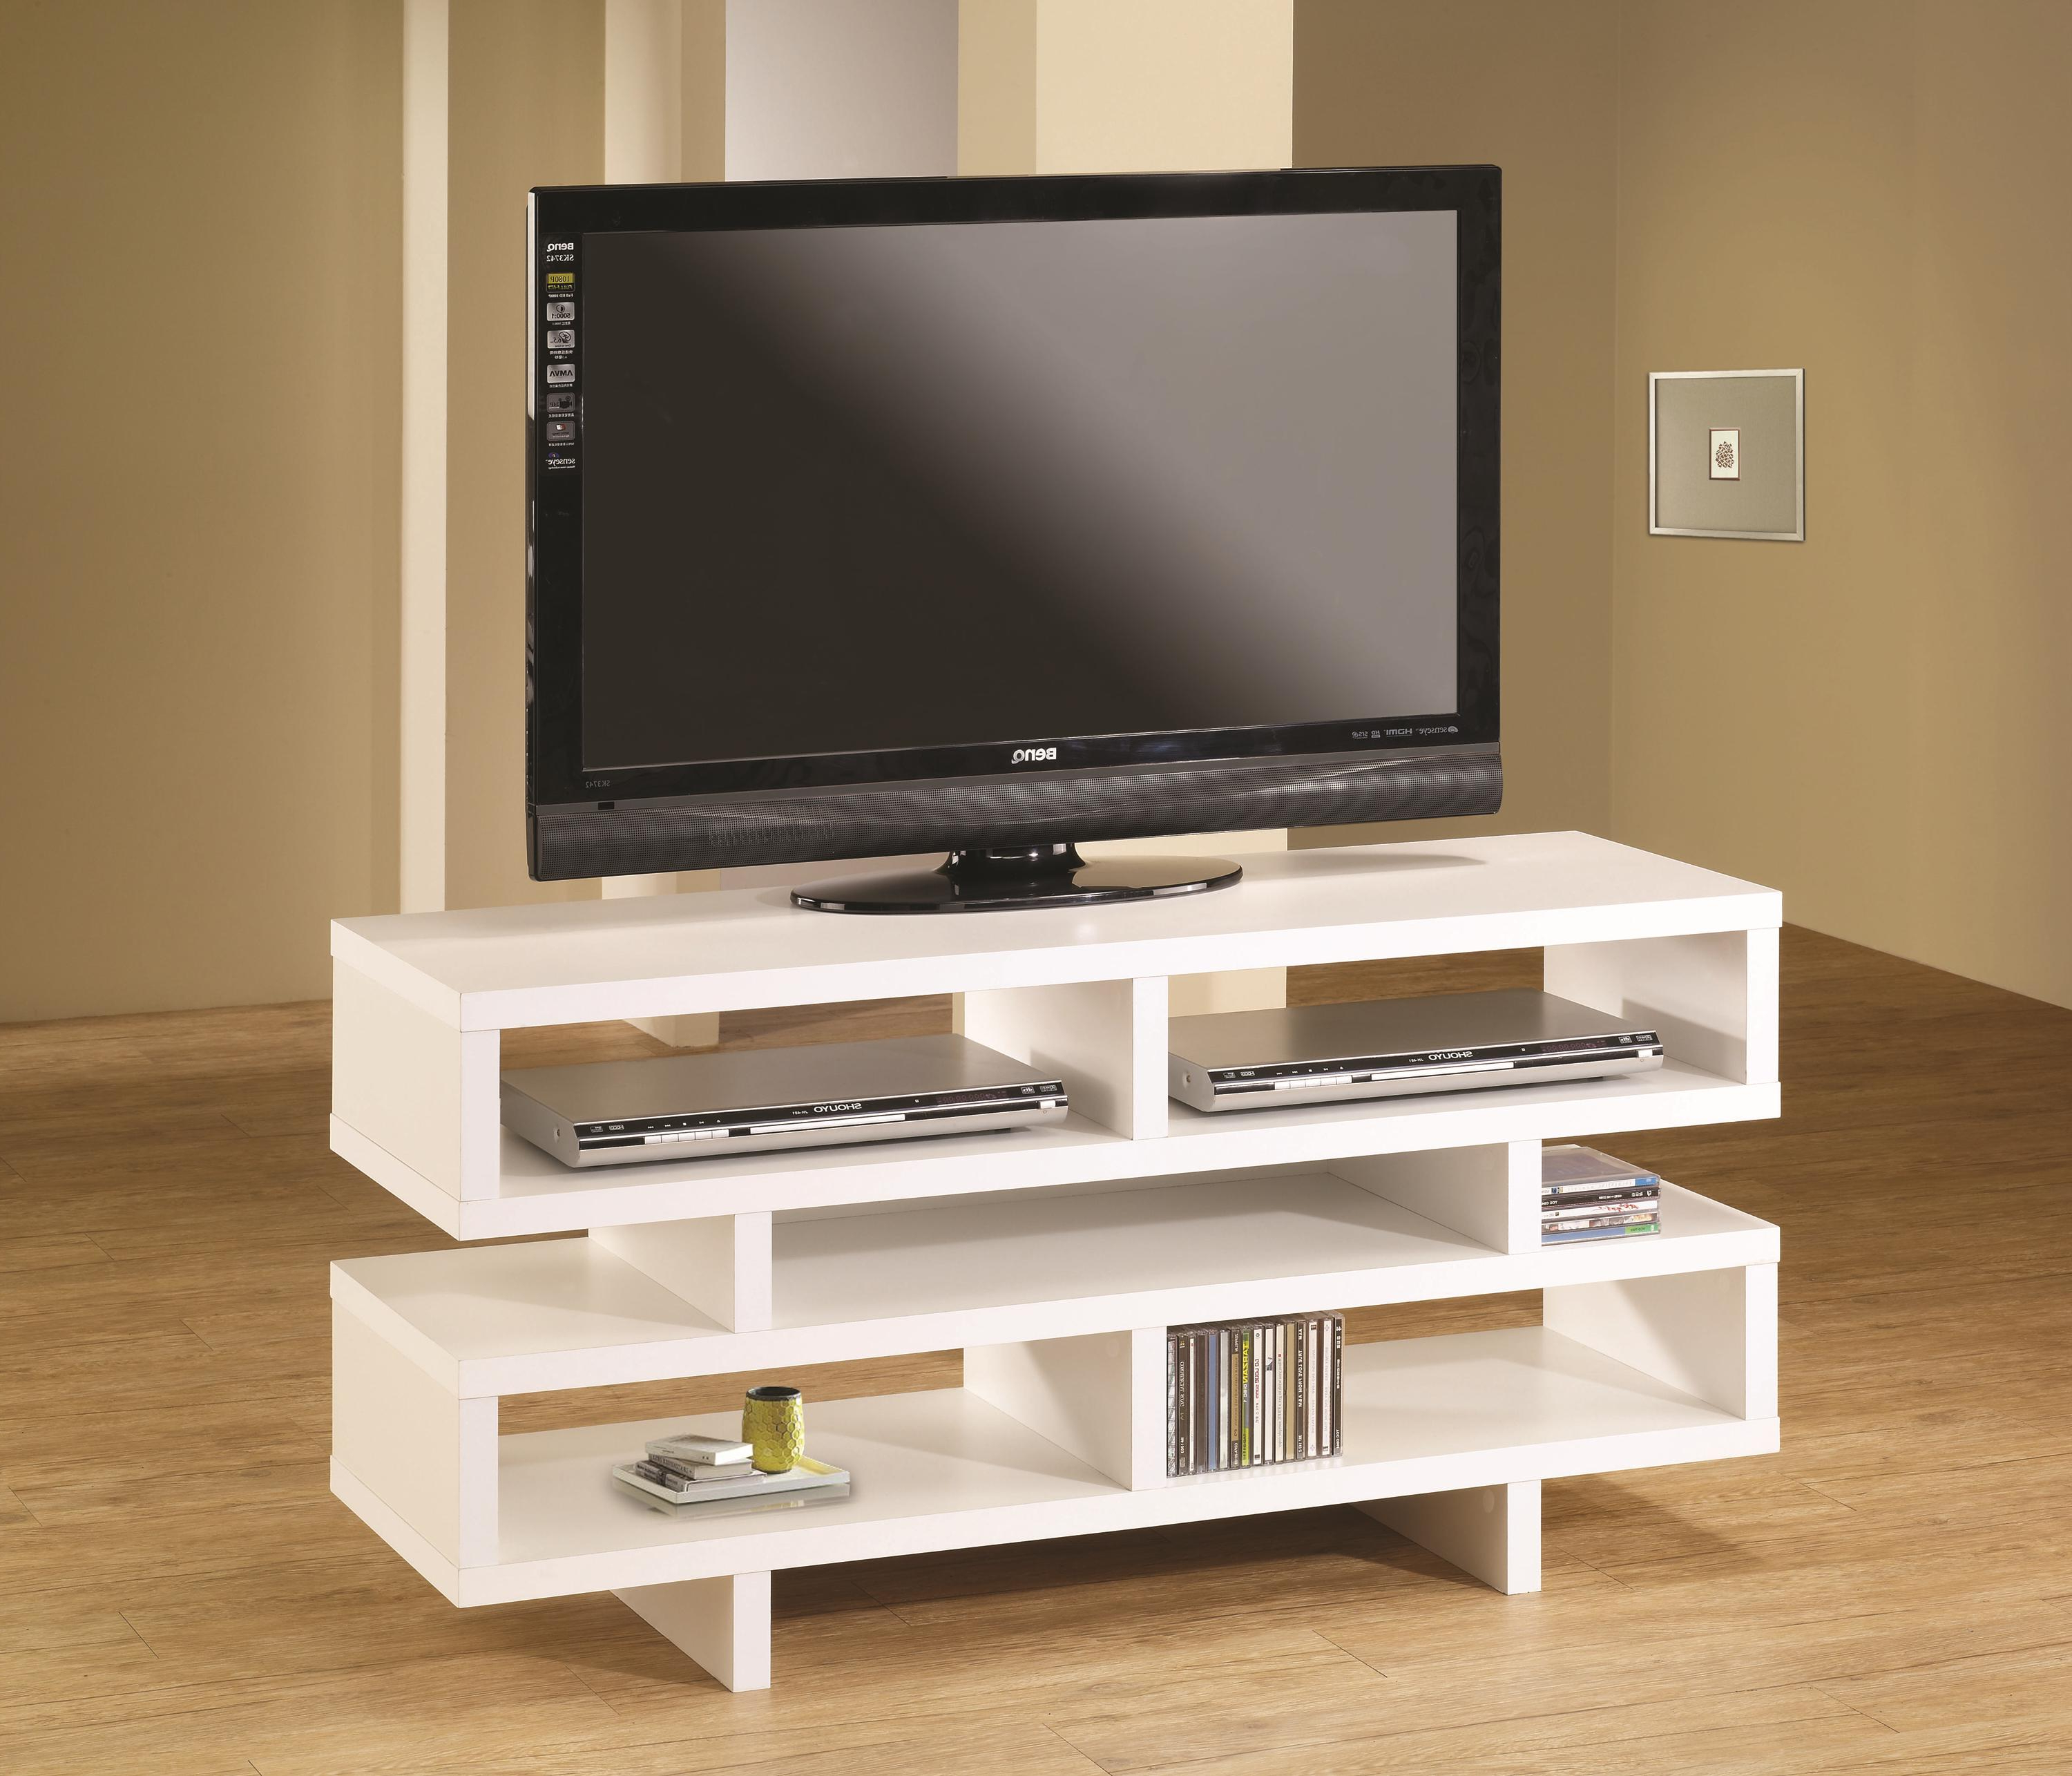 White Contemporary Tv Stands Intended For Most Up To Date Coaster Tv Stands Contemporary Tv Console With Open Storage & White (View 18 of 20)